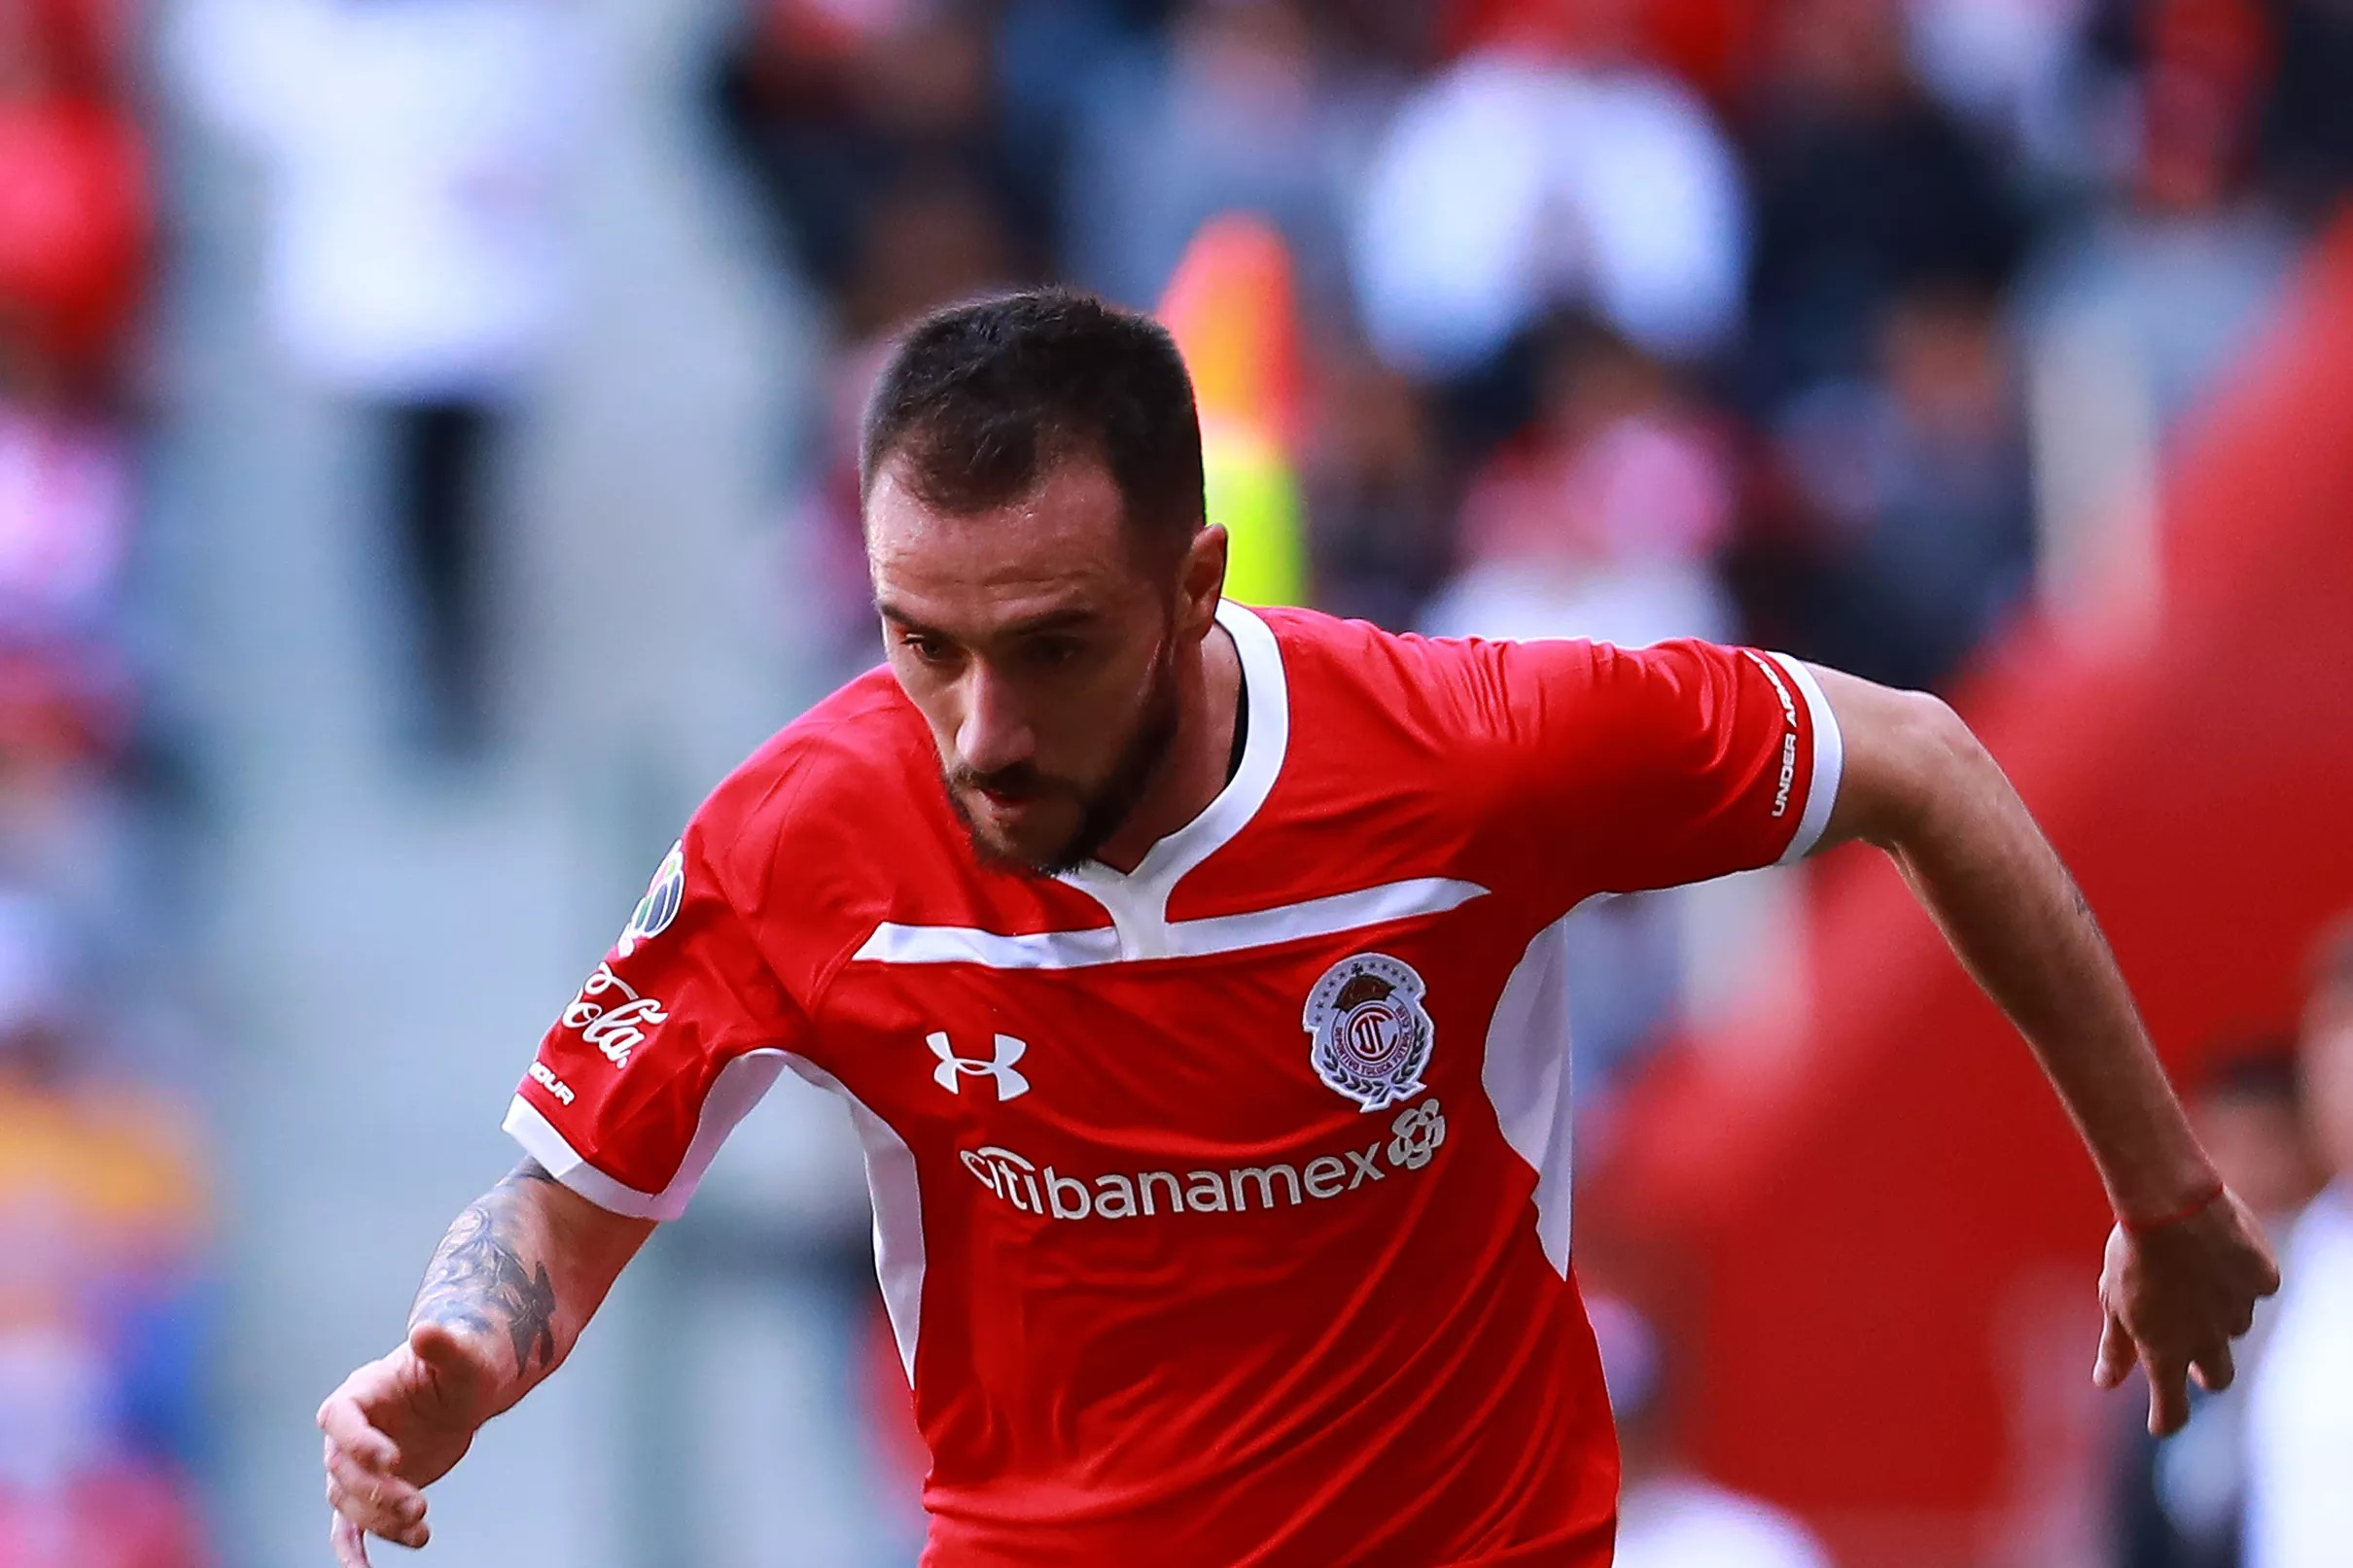 Know the Enemy: Toluca FC